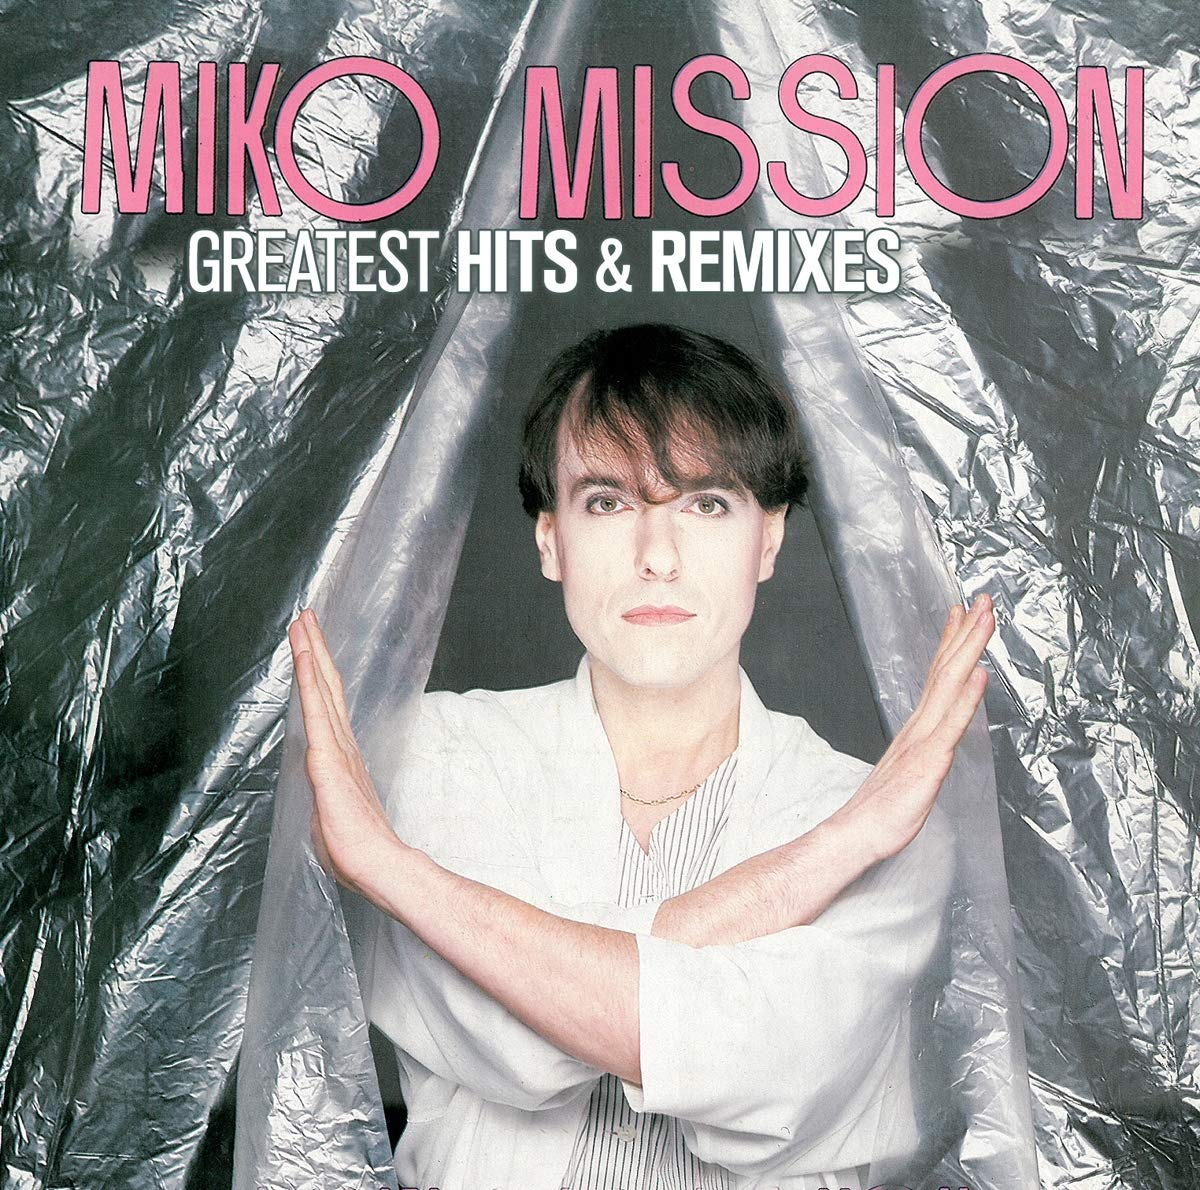 Miko Mission. Greatest Hits & Remixes (2 CD) queen greatest hits cd